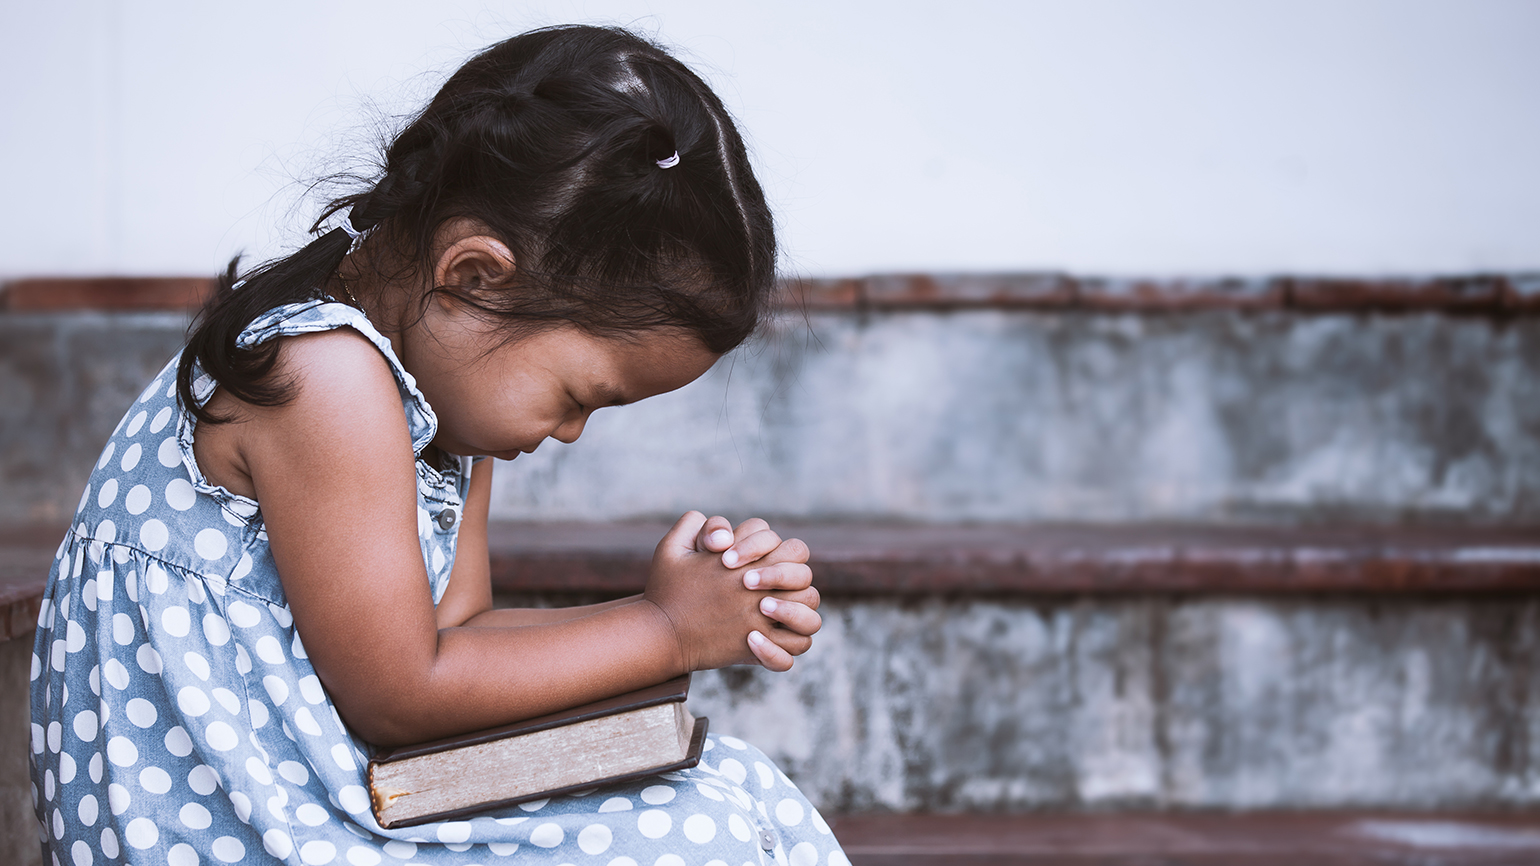 A young girl bows her head in prayer